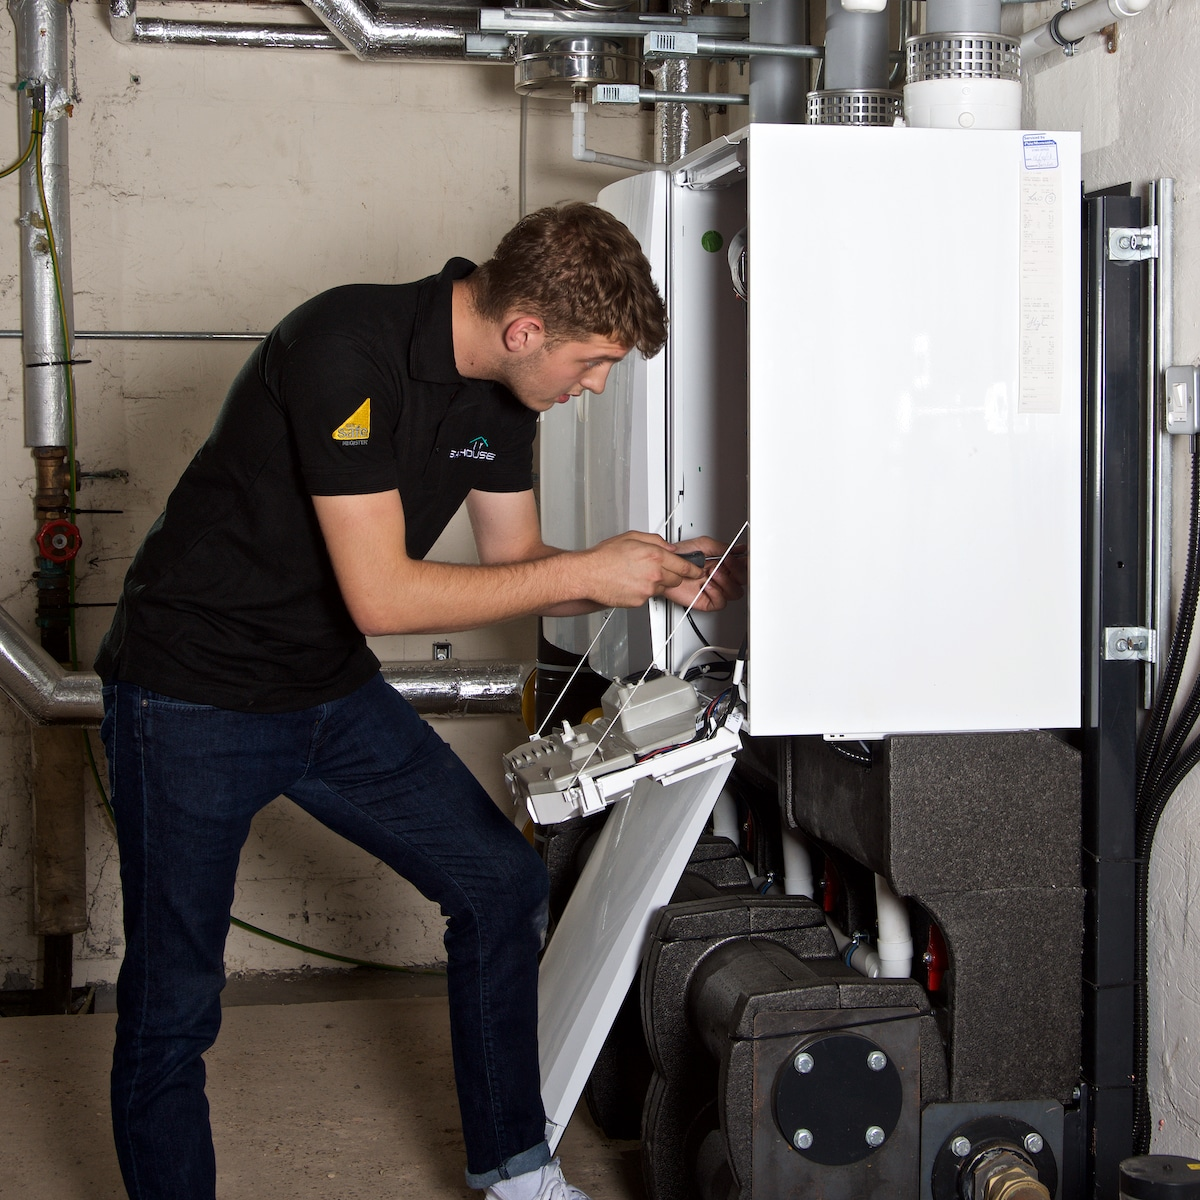 gas fitter working on a boiler